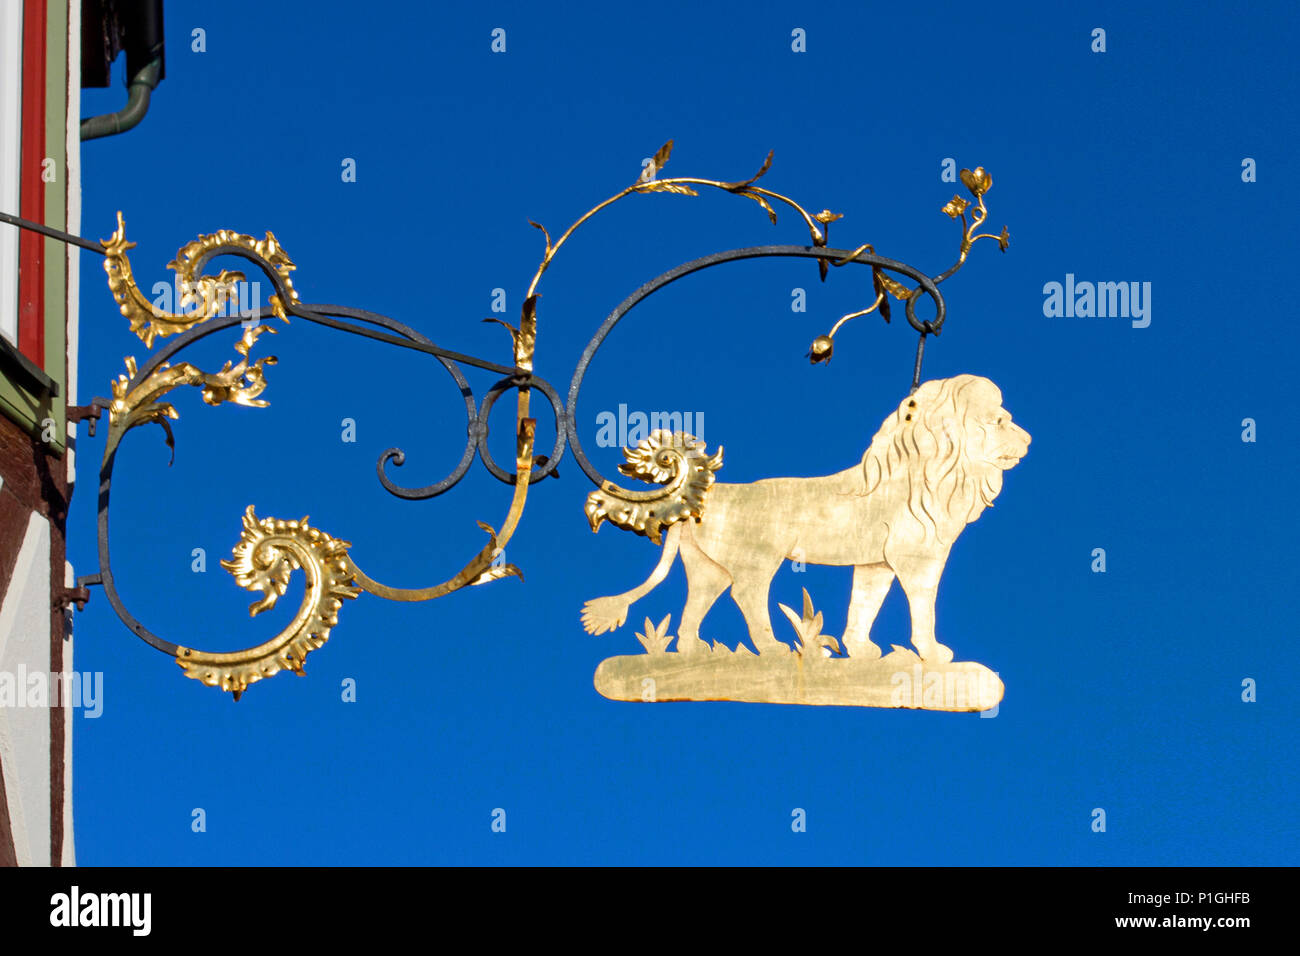 Bavaria,Germany,Lohr am Main, tavern sign, the Loewen, Deutschland,Bayern,Lohr am Main, Wirtshausschild, Zum Loewen - Stock Image